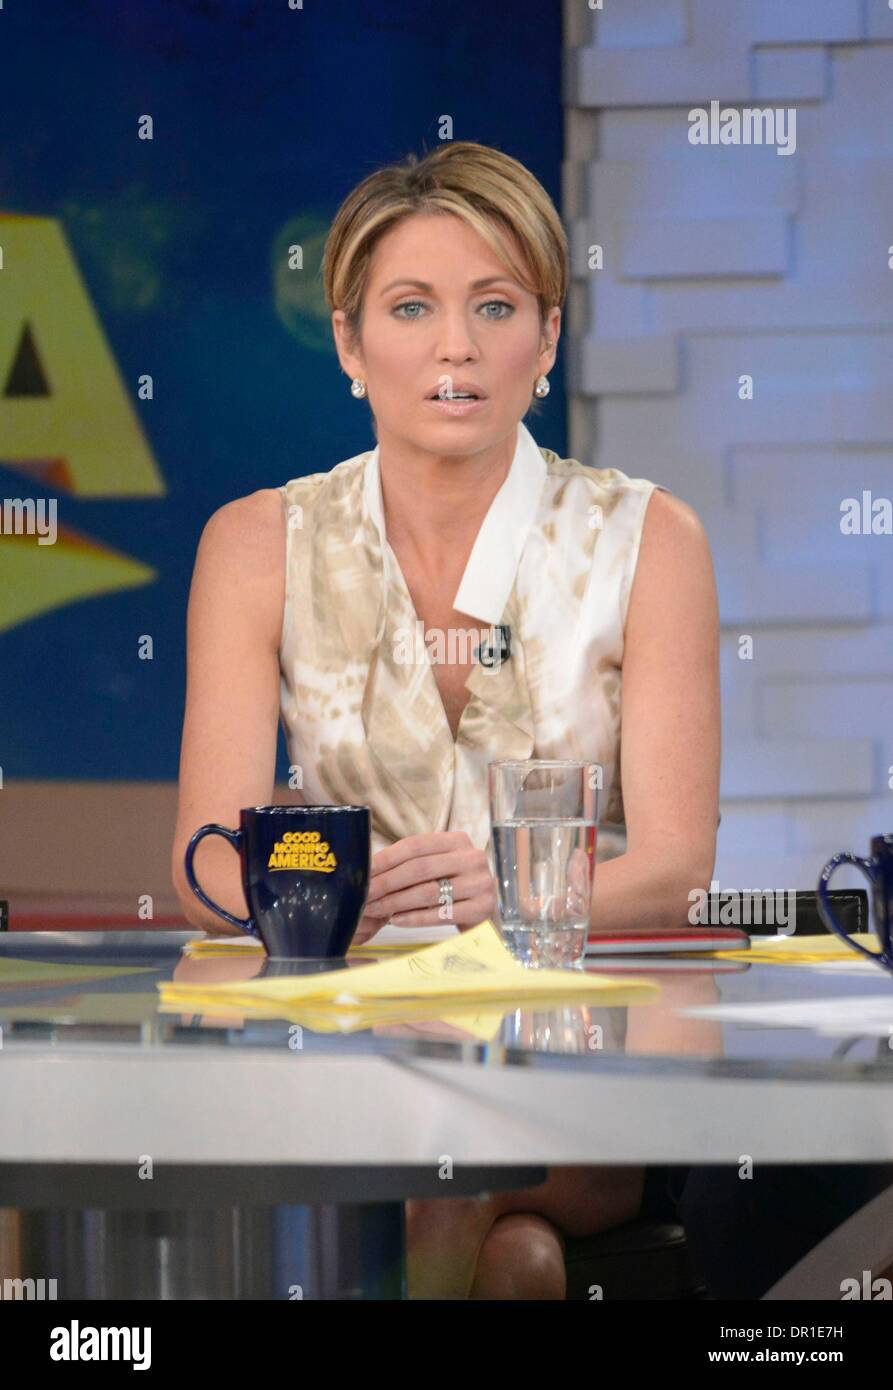 New York, NY, USA. 17th Jan, 2014. Amy Robach at Good Morning America at talk show appearance for Celebrity Candids Stock Photo